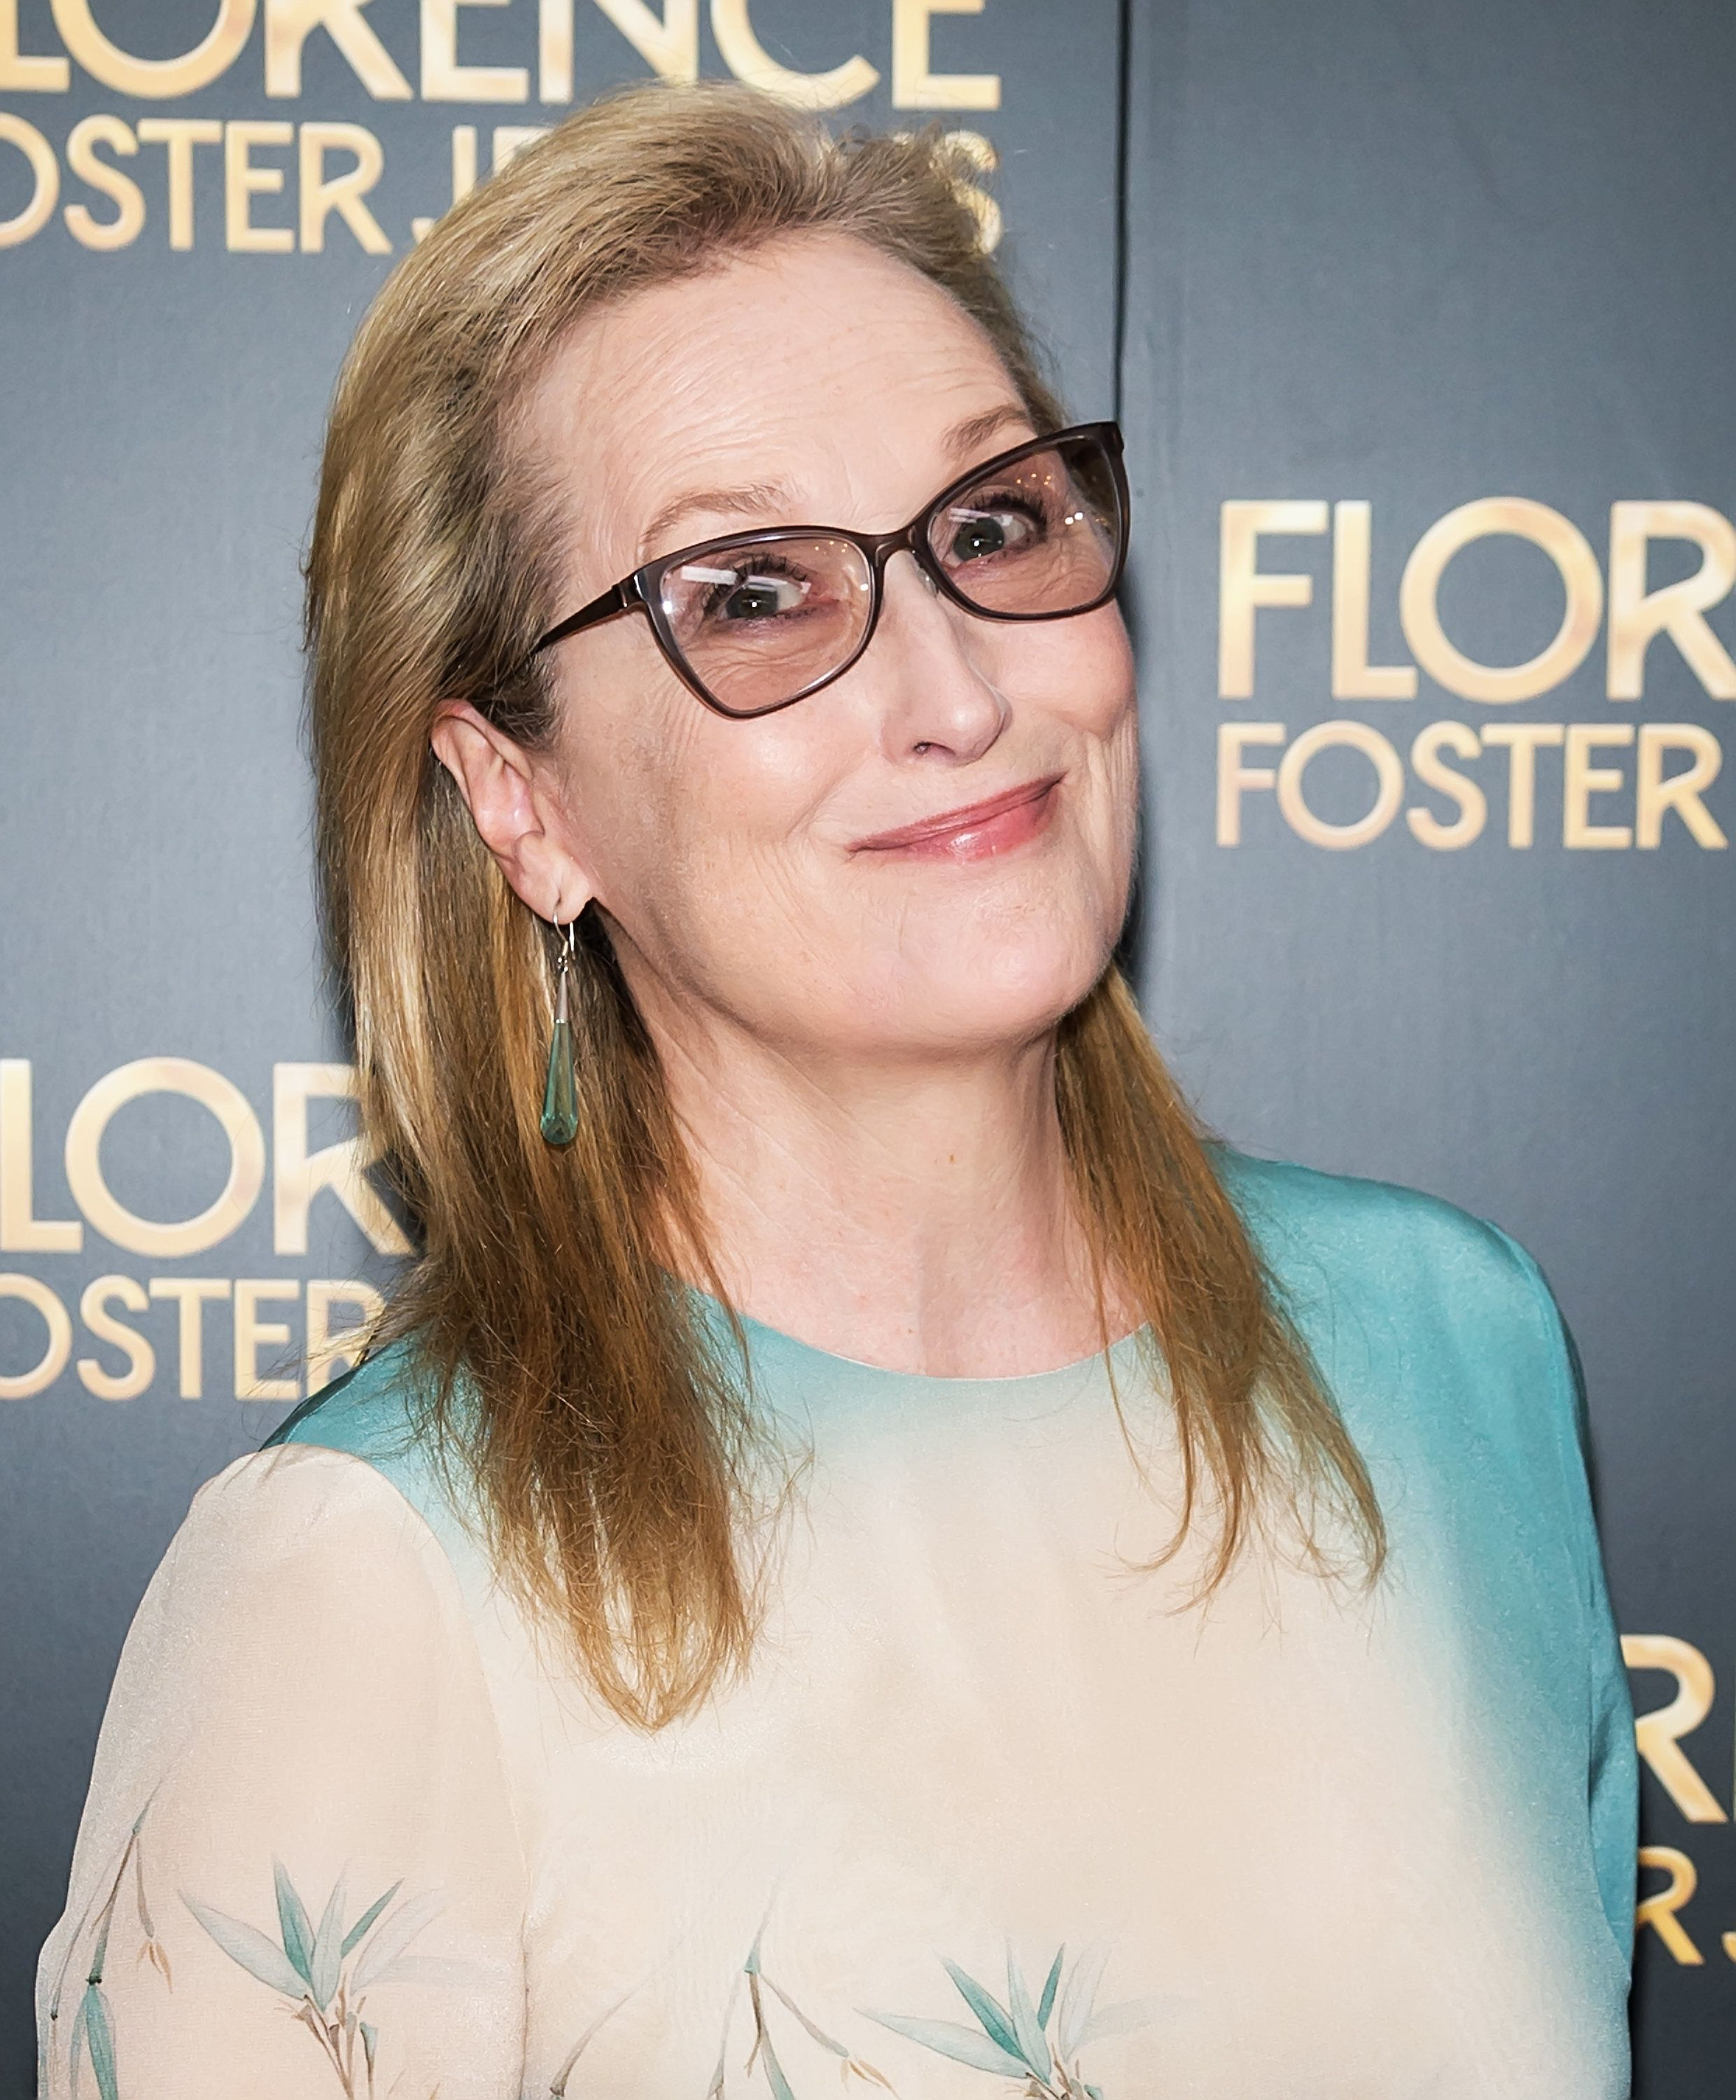 NEW YORK, NY - AUGUST 09:  Actress Meryl Streep attends the 'Florence Foster Jenkins' New York premiere at AMC Loews Lincoln Square 13 theater on August 9, 2016 in New York City.  (Photo by Gilbert Carrasquillo/FilmMagic)